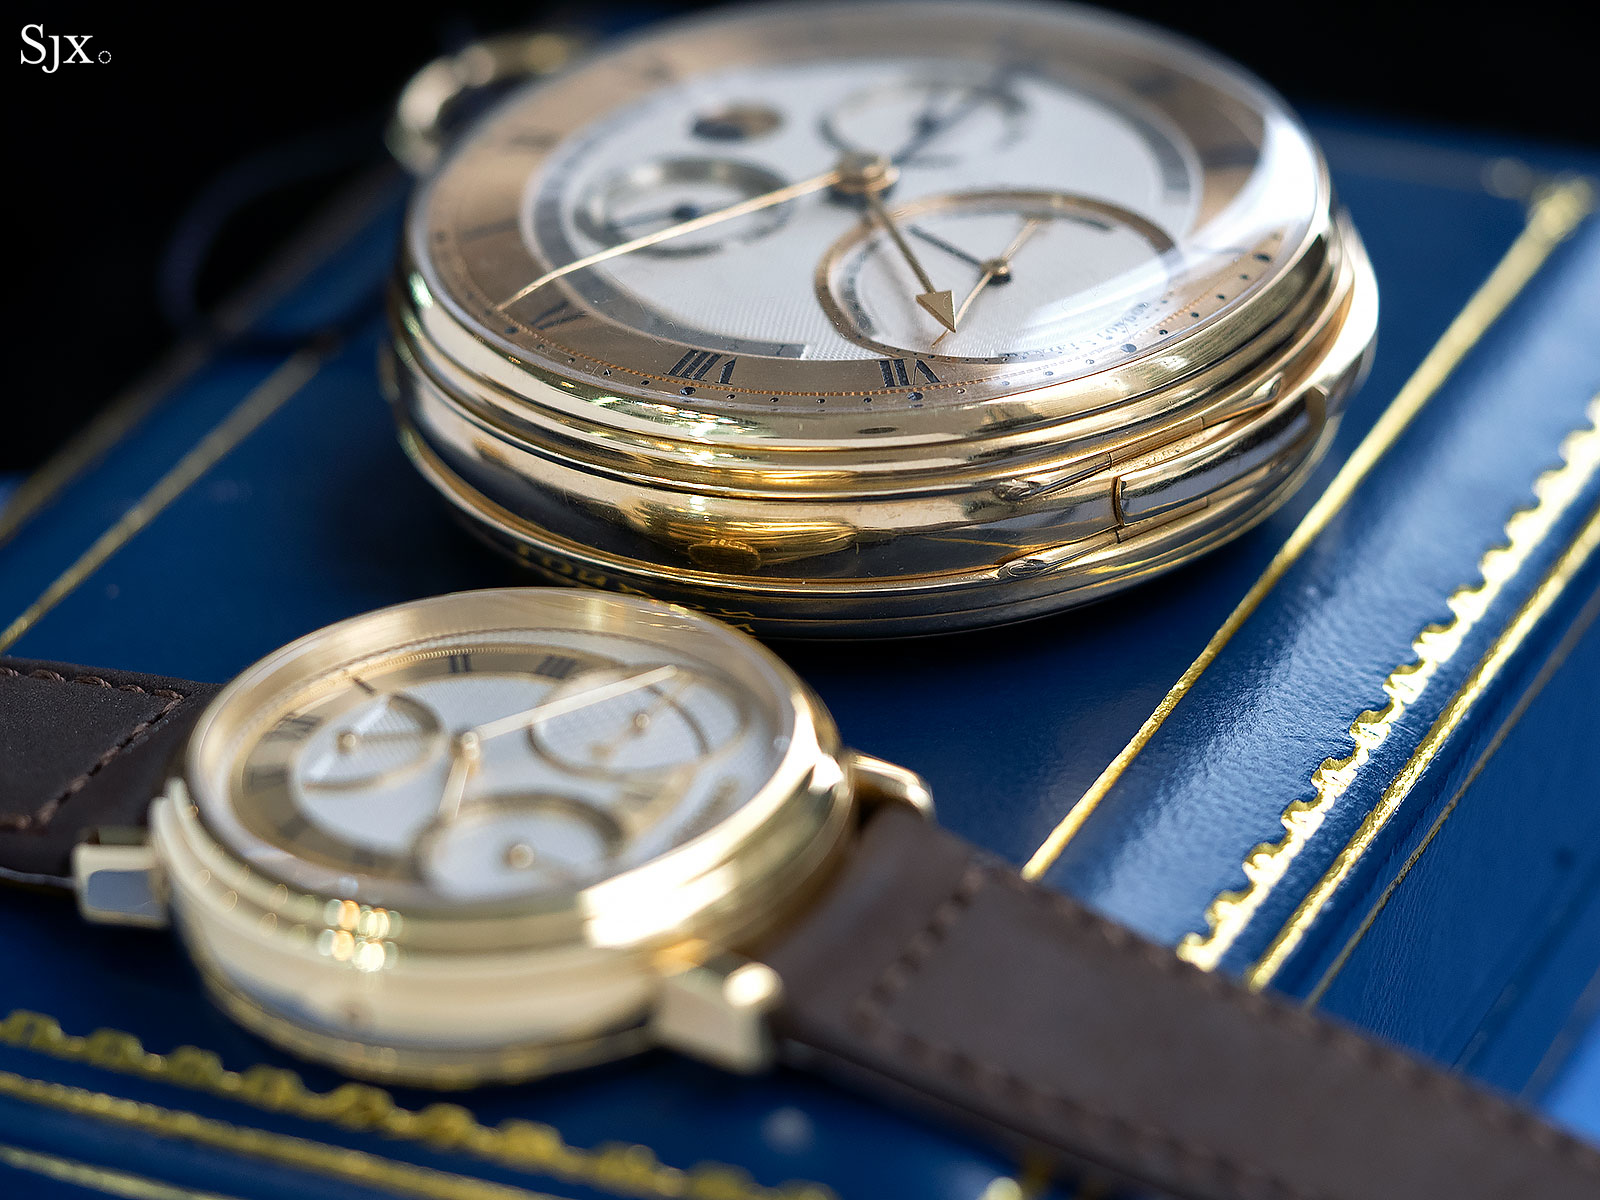 George Daniels Grand Complication pocket watch 2